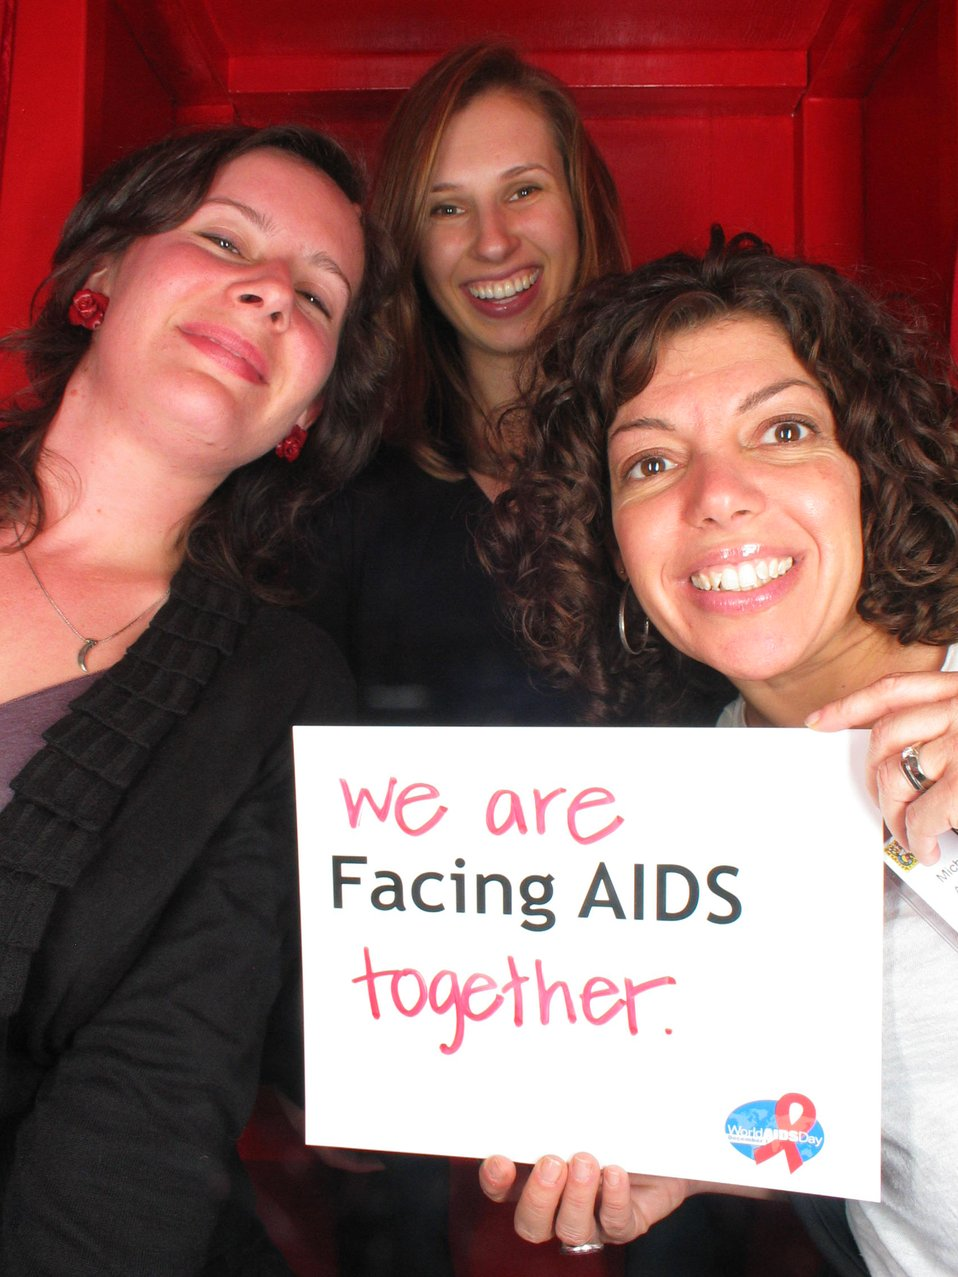 We are Facing AIDS together.